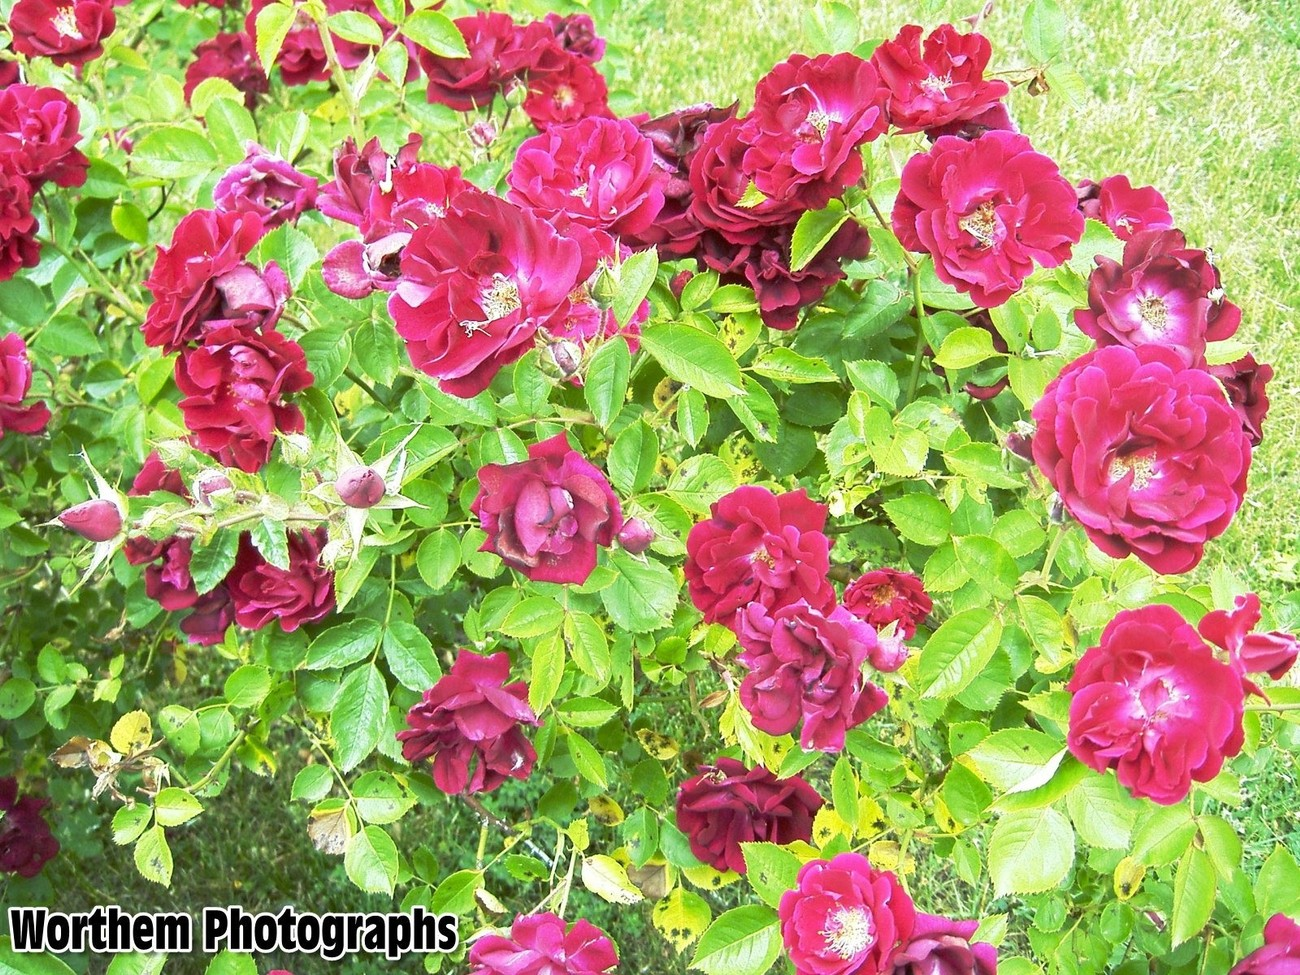 A picture of a bed roses just waiting to be smelled.